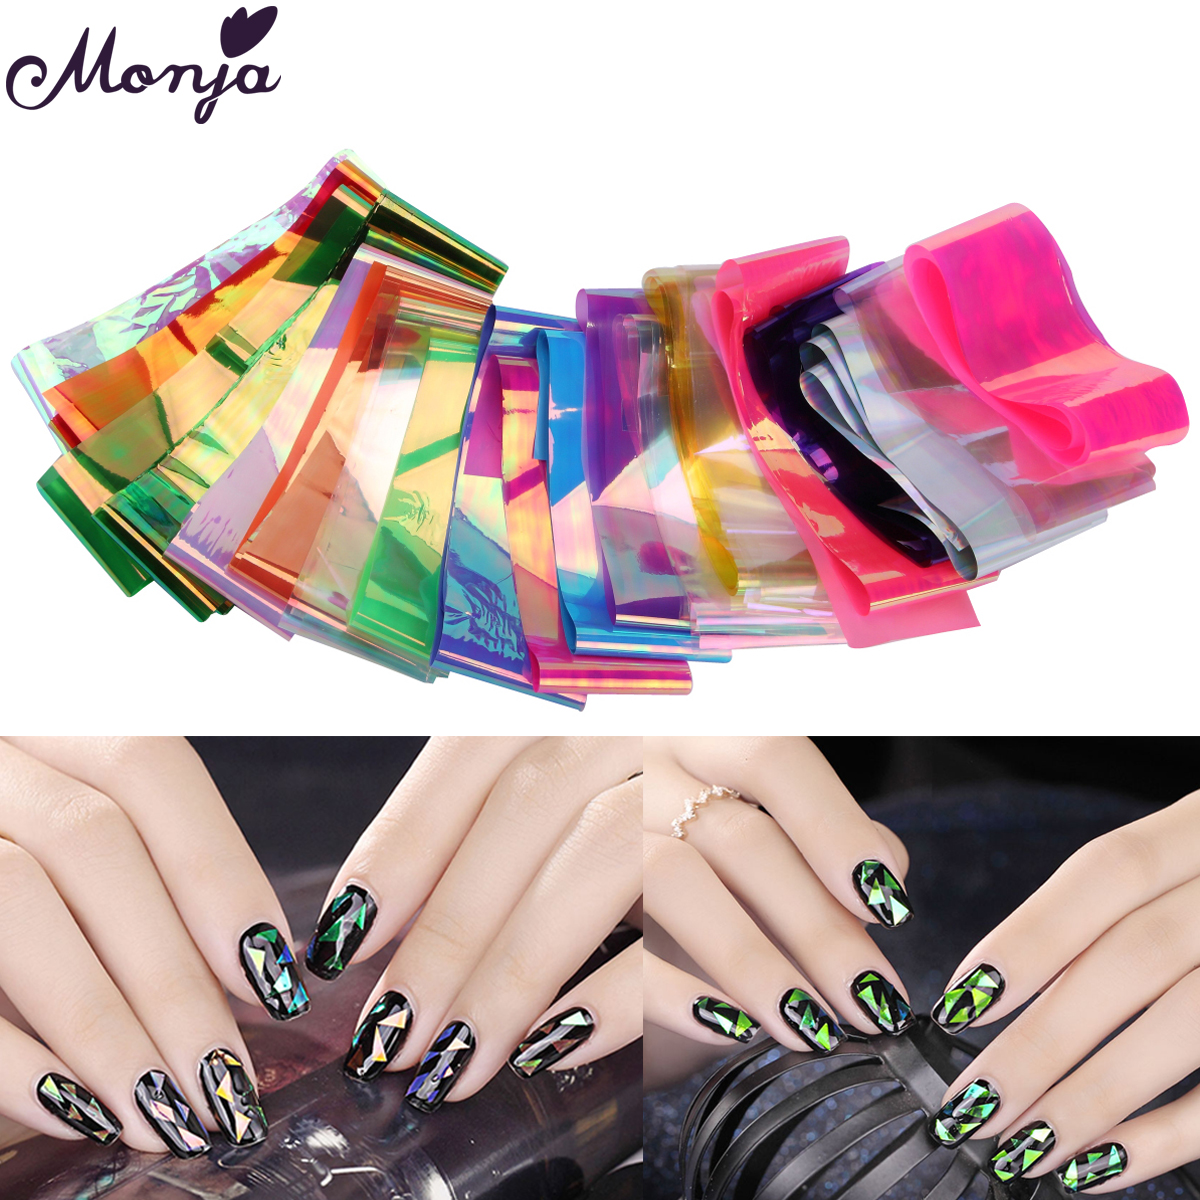 20 Colors Broken Glass Mirror Nail Art Starry Sky Laser Glitter Stickers Tips Irregular Foil Transfer 3D DIY Decoration Decal 5cm 100m new holographic shiny laser 20 colors nail transfer foil sticker broken glass nail art beauty transfer foil